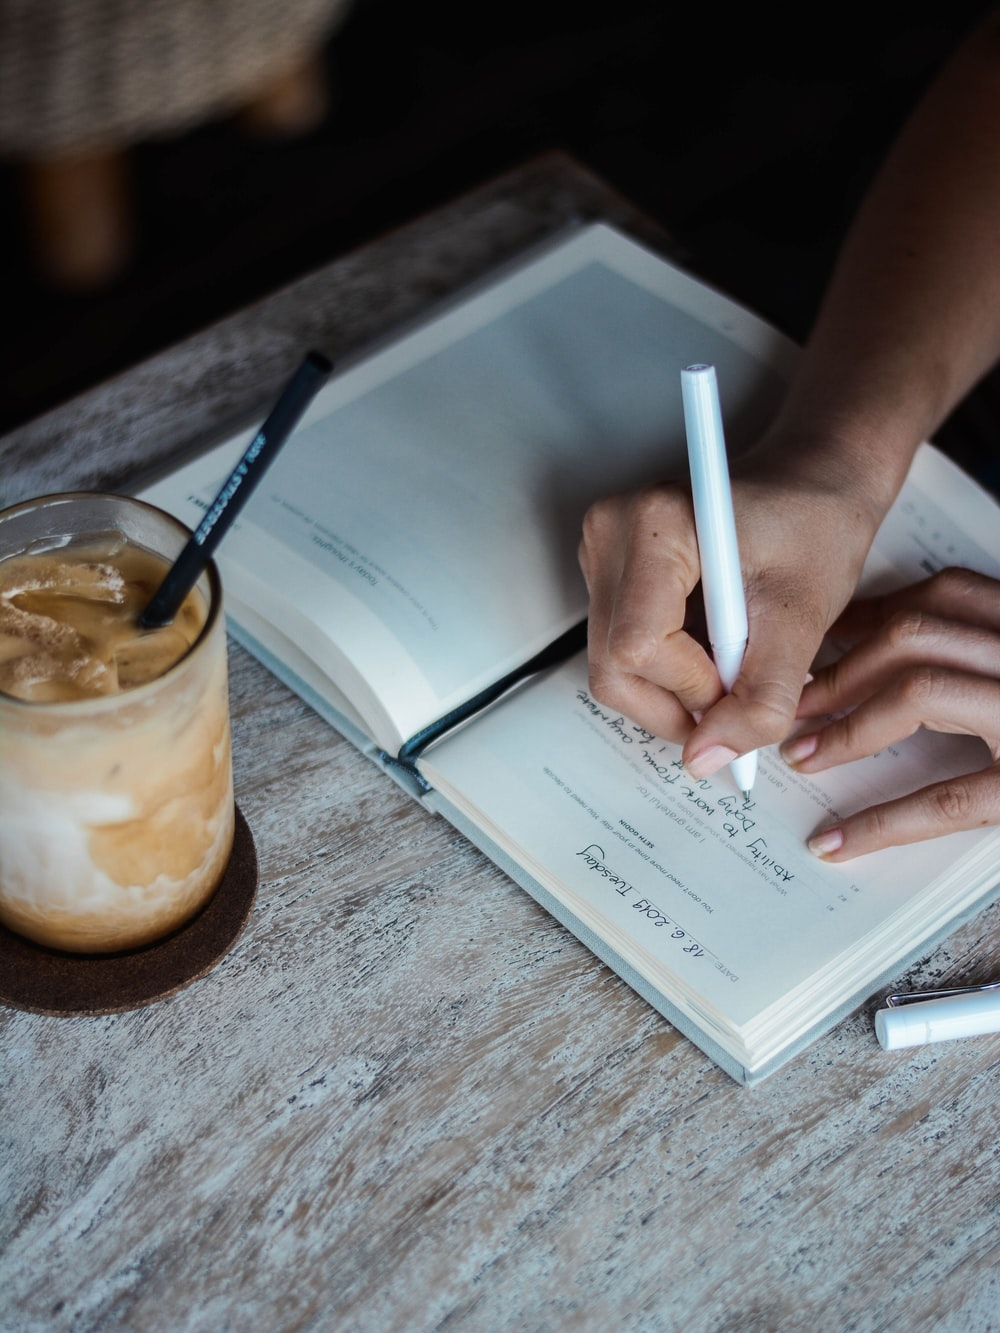 person writing on book